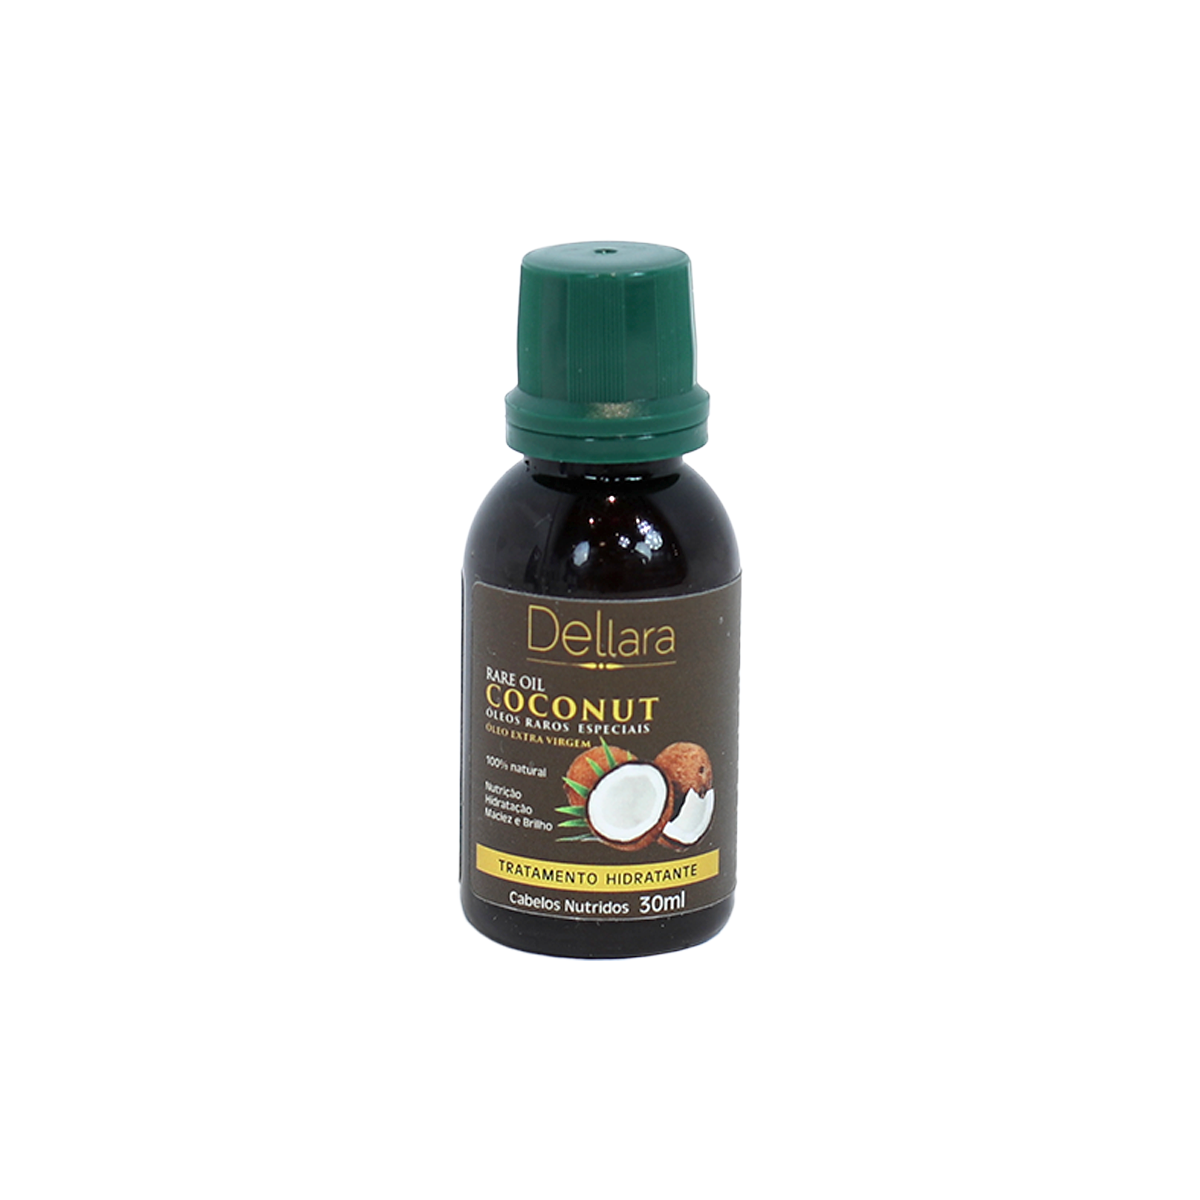 Coconut Oil 30ml - Dellara Cosméticos